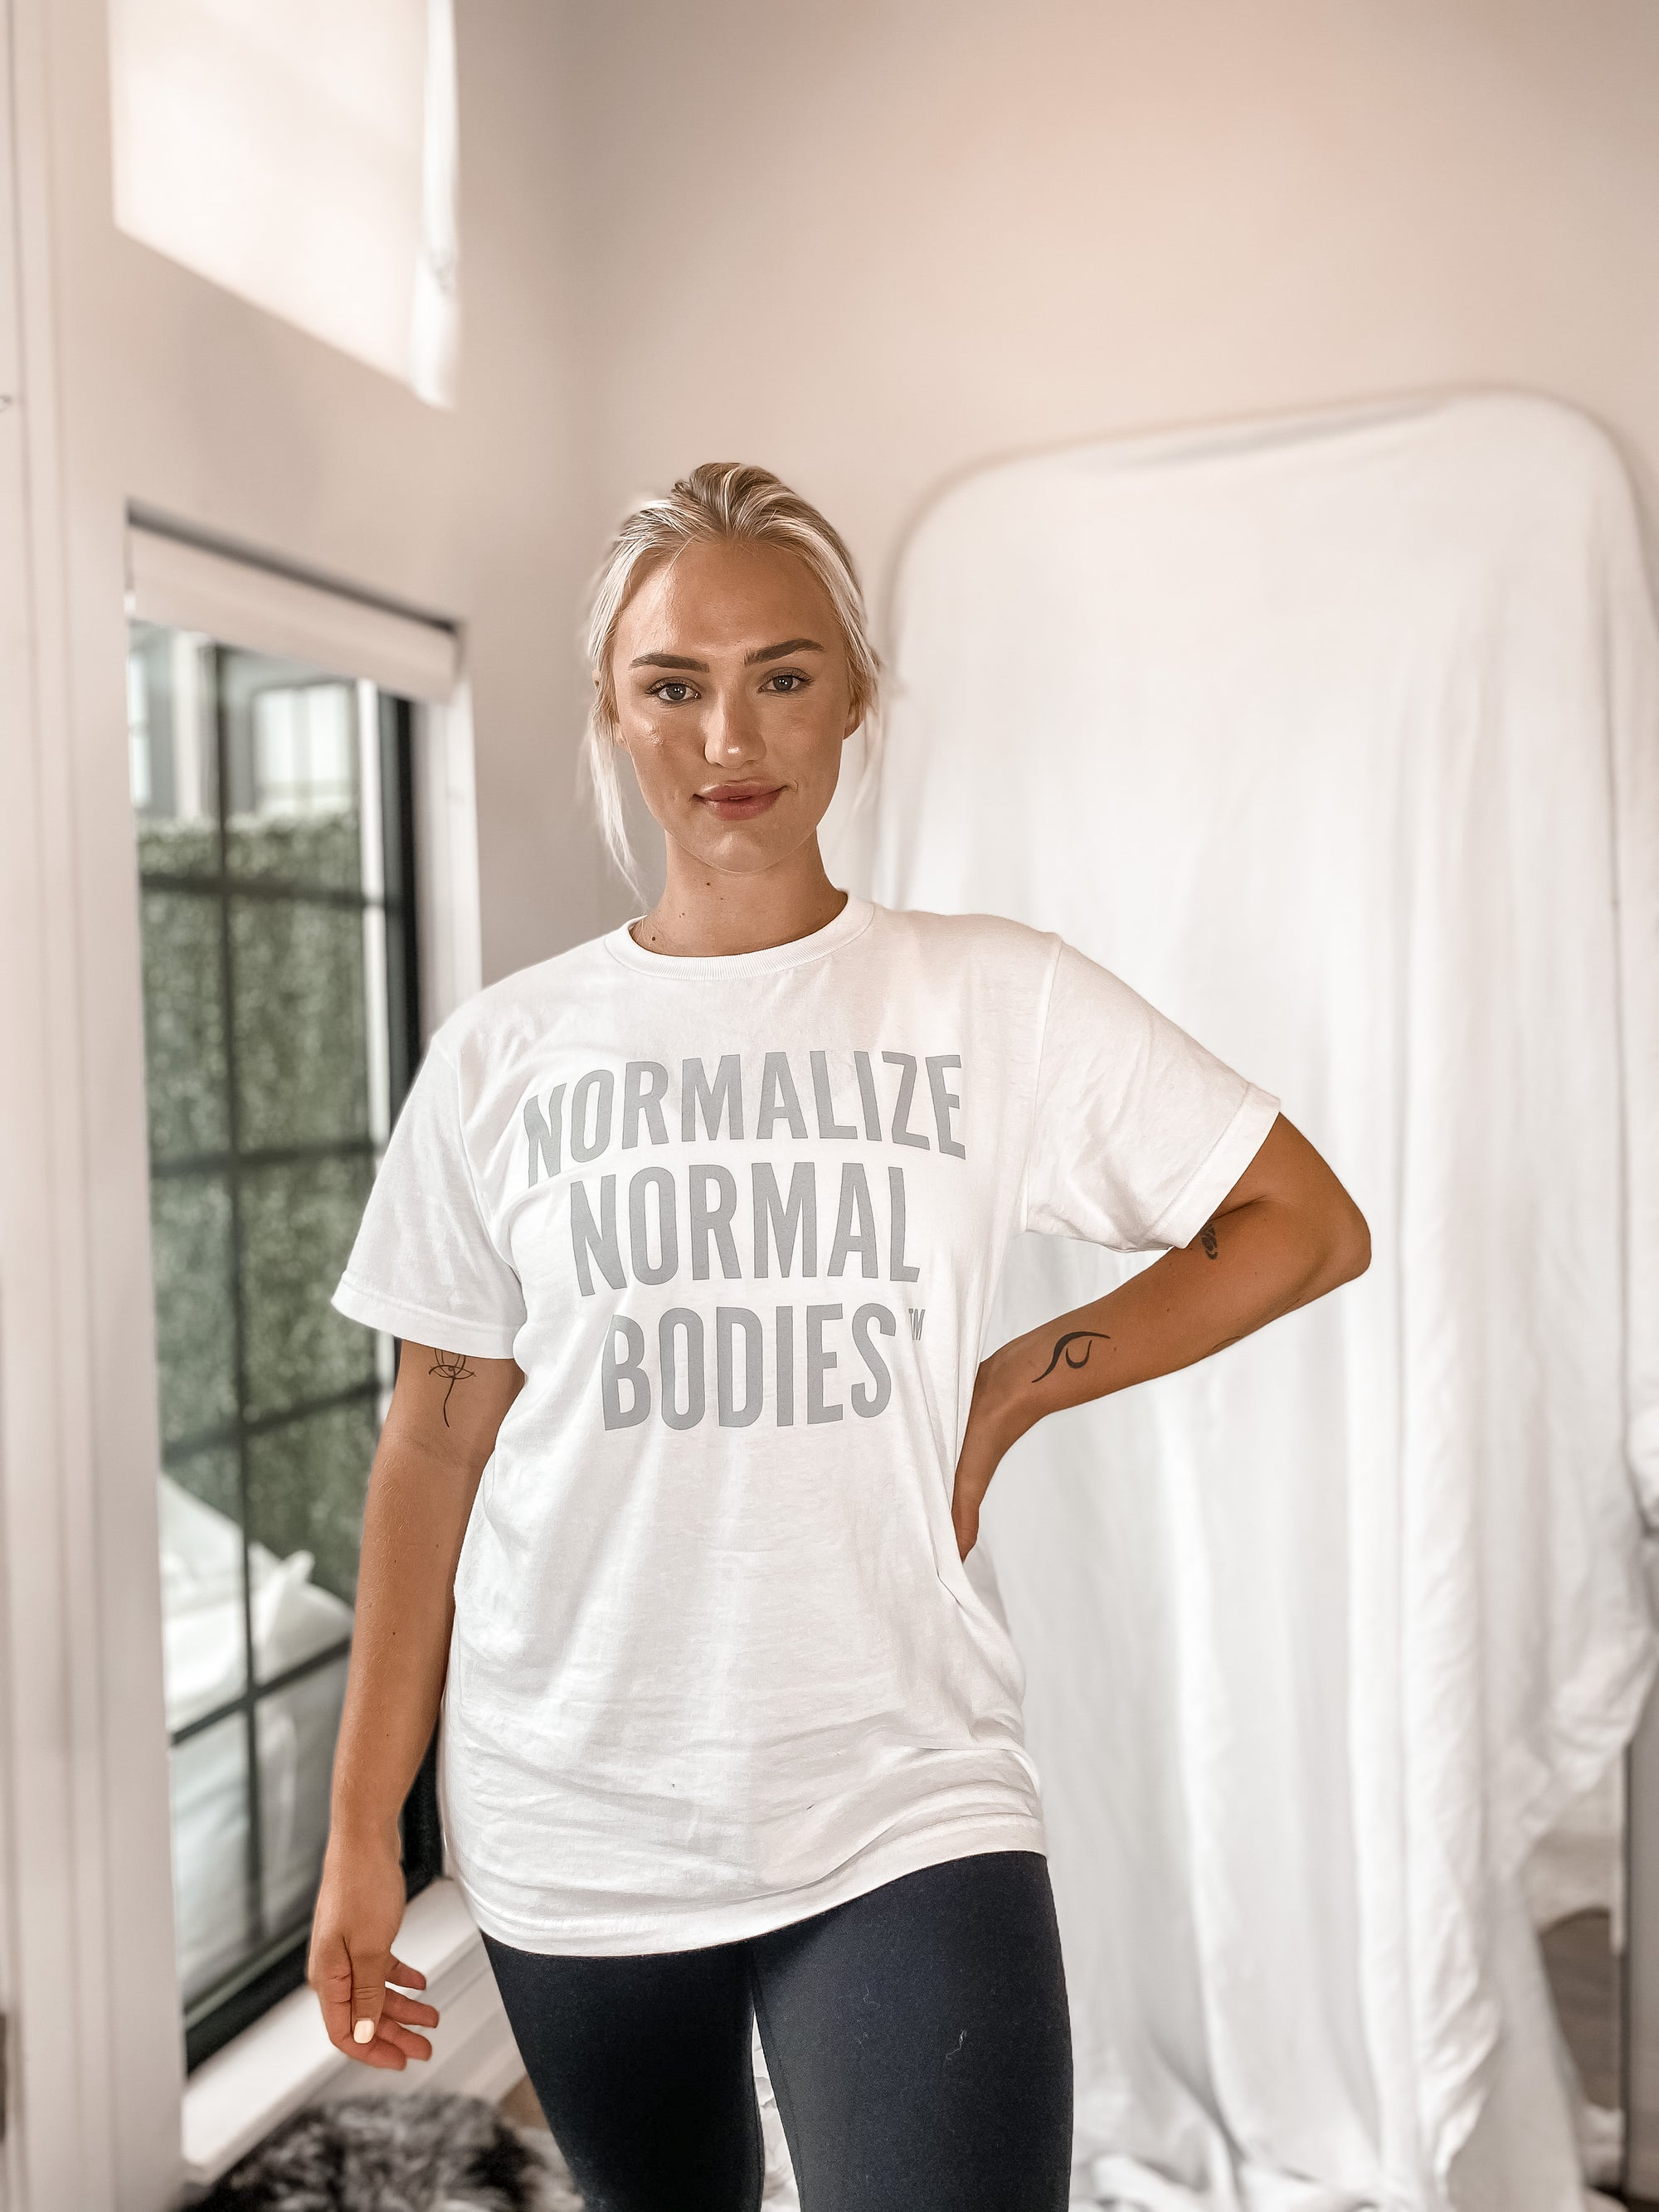 Normalize Normal Bodies Tee